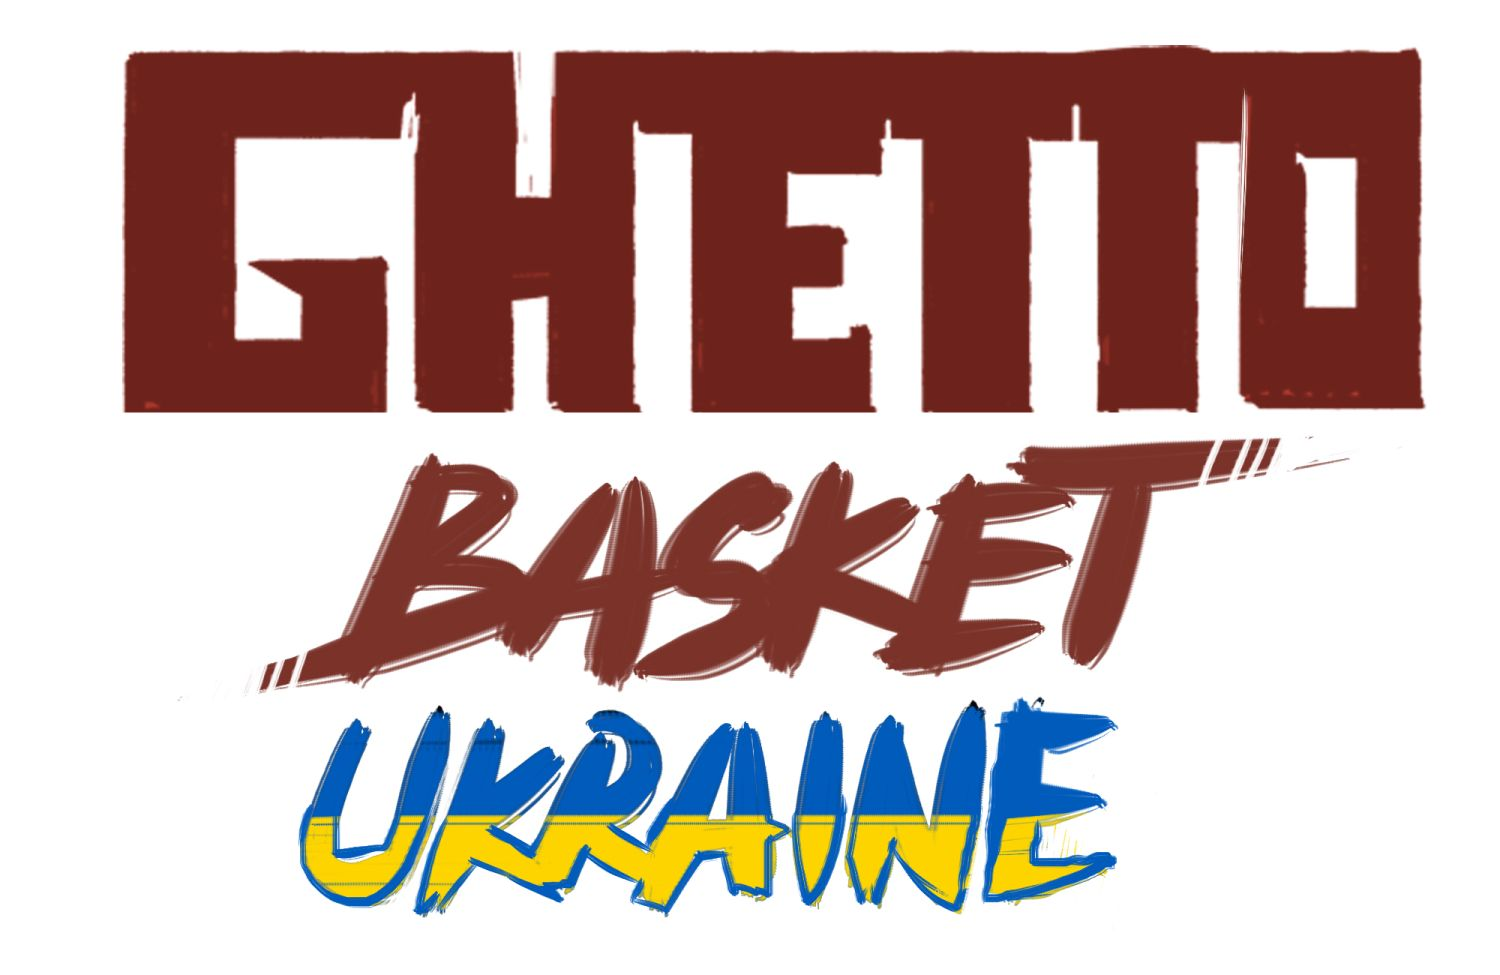 Ghetto Basket Ukraine